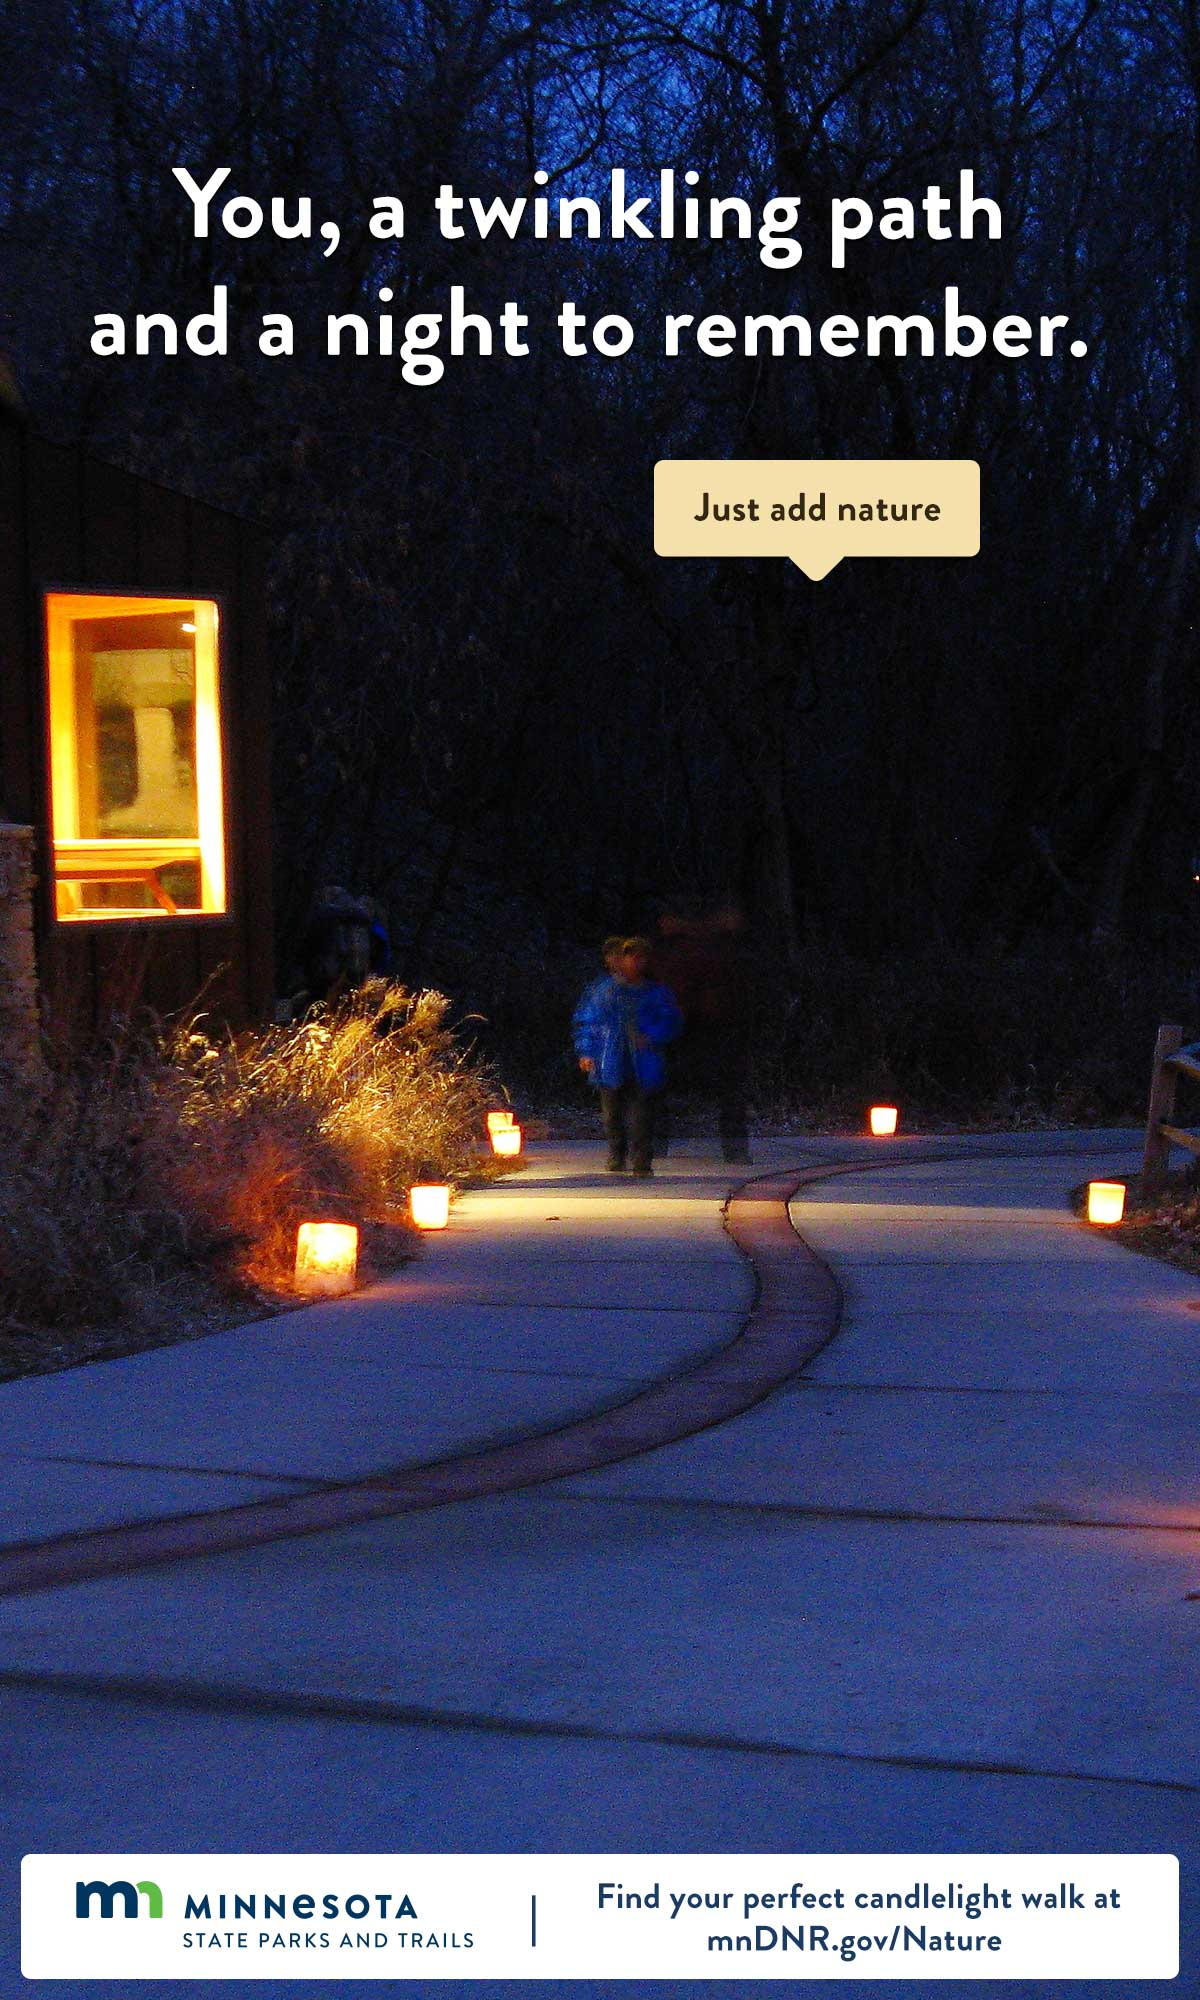 You, a twinkling path and a night to remember. Just add nature.